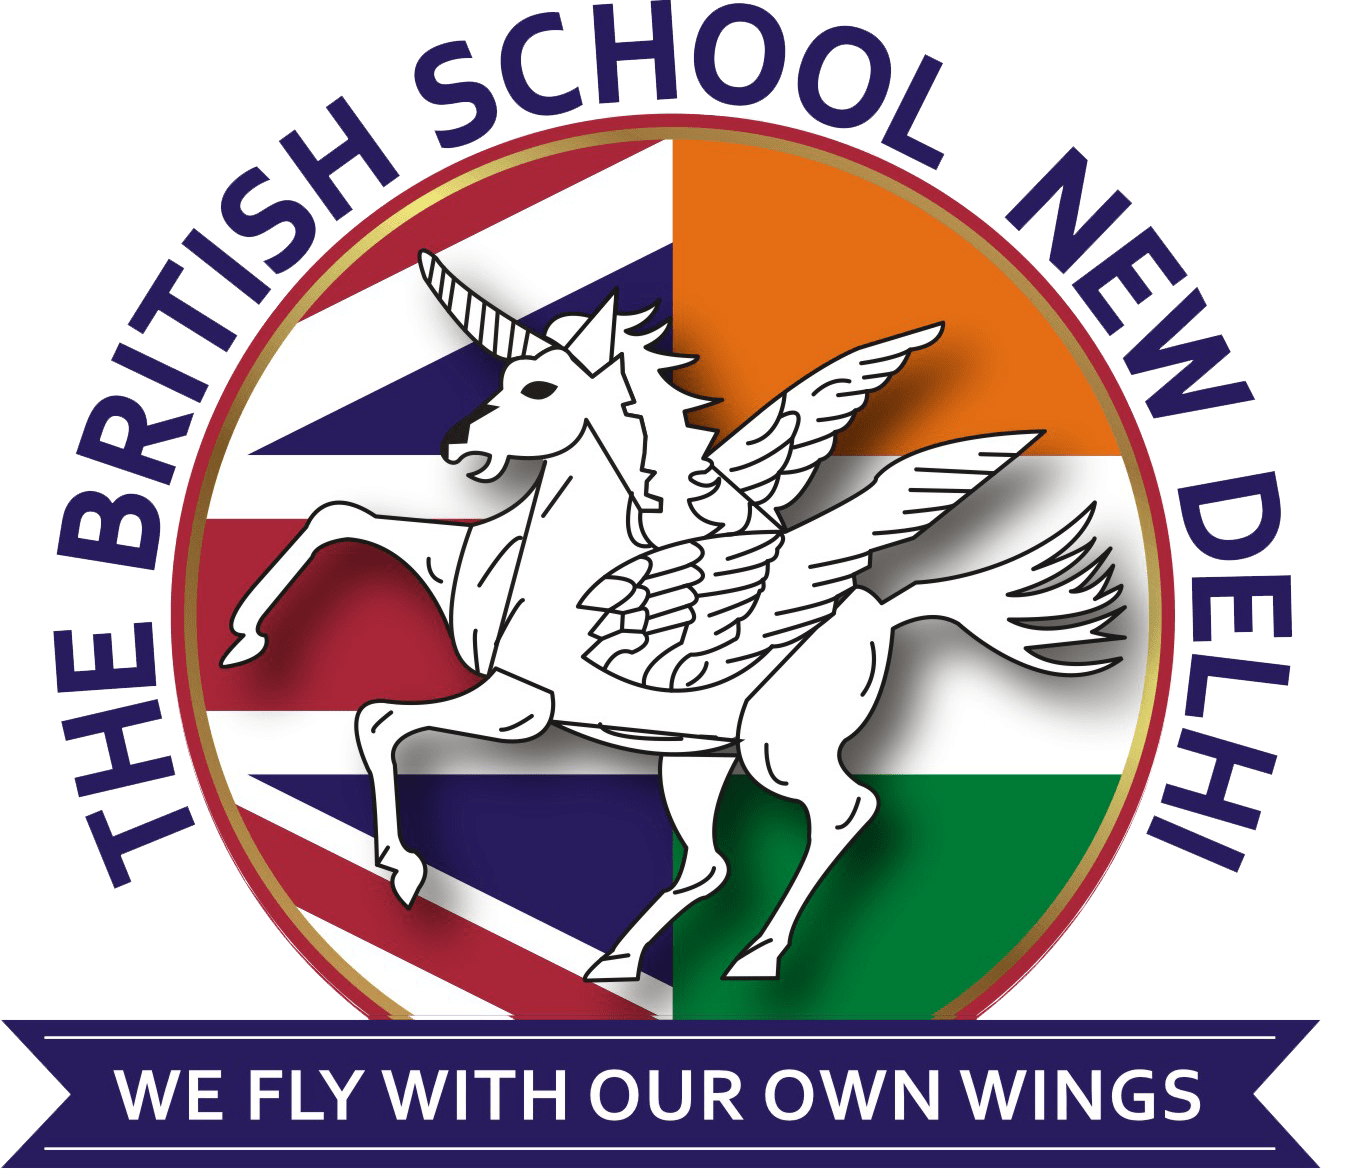 The British School, New Delhi